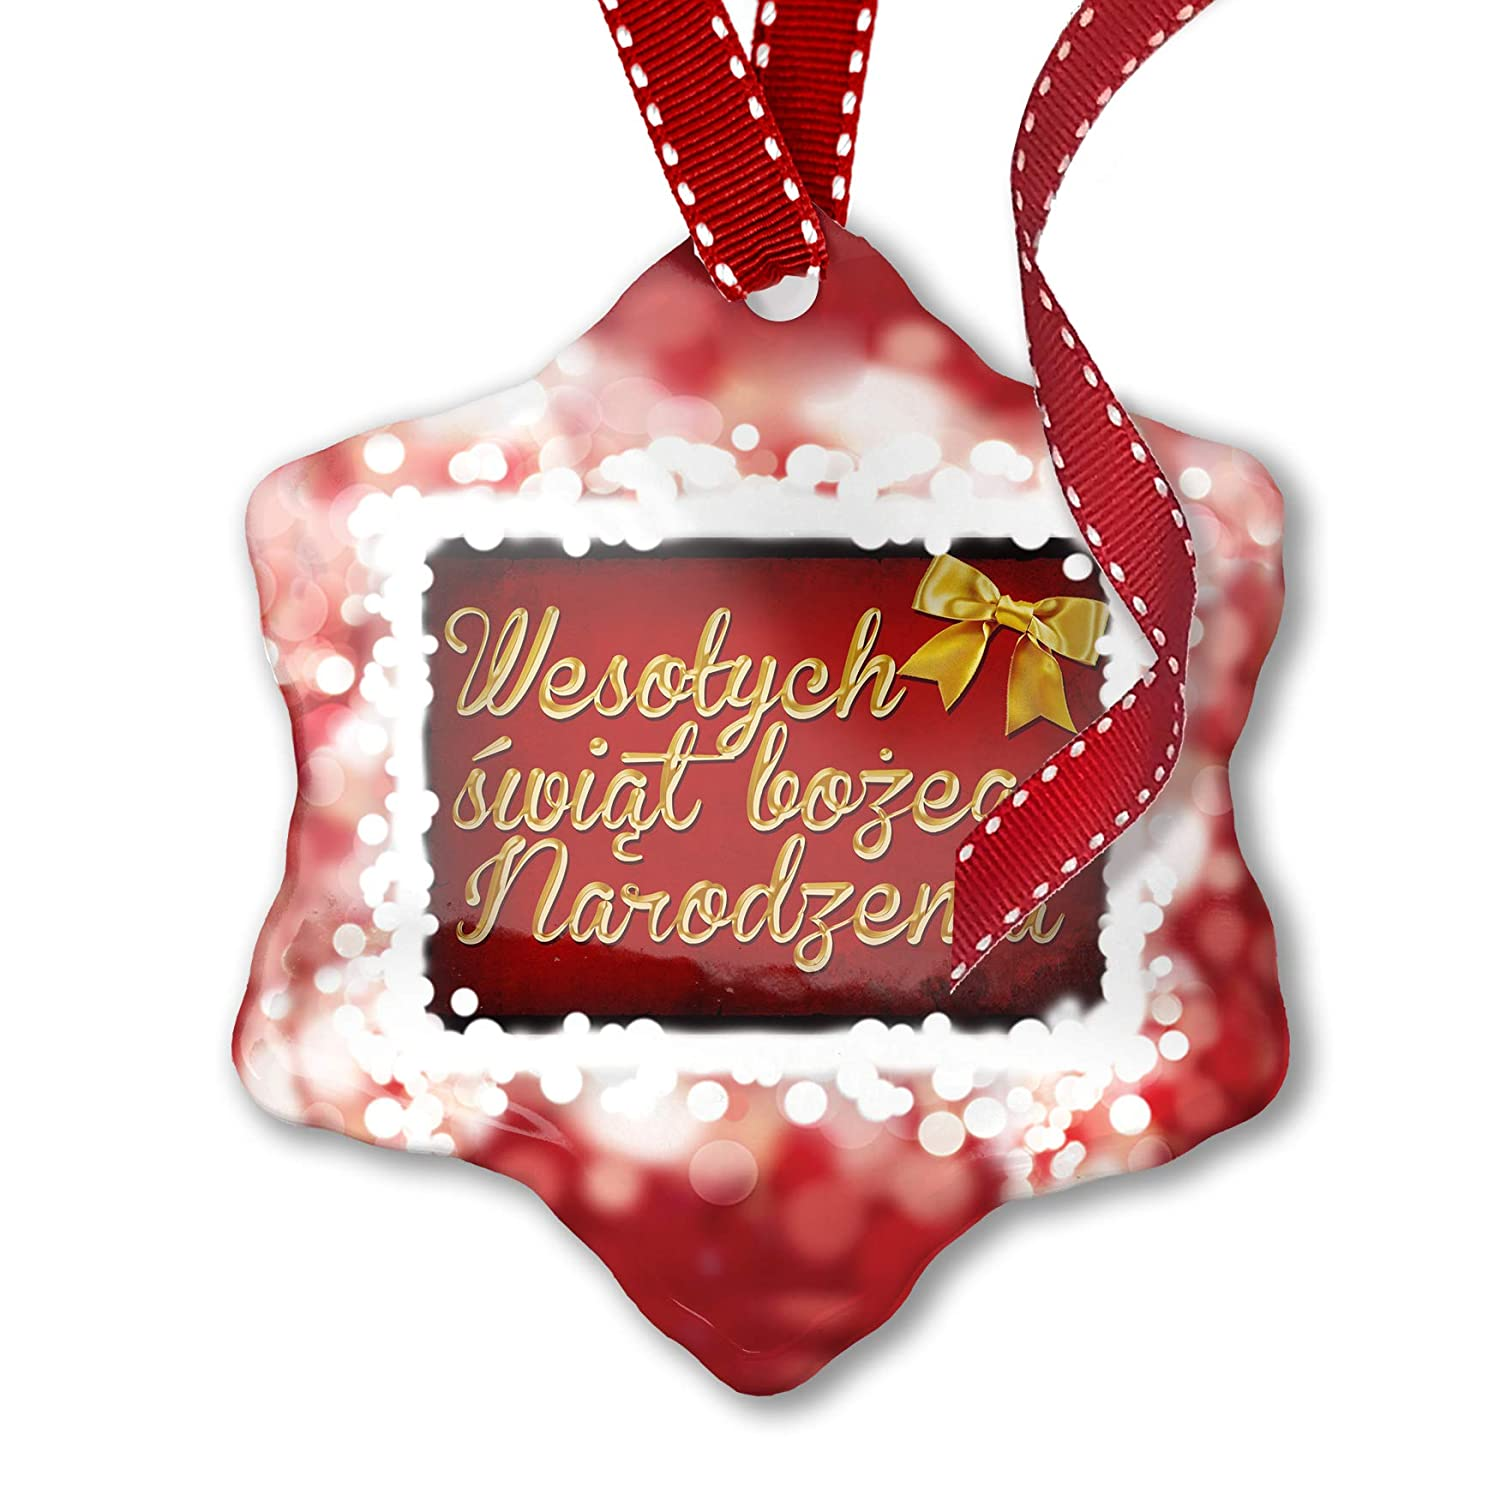 Merry Christmas In Polish.Neonblond Christmas Ornament Merry Christmas In Polish From Poland Red